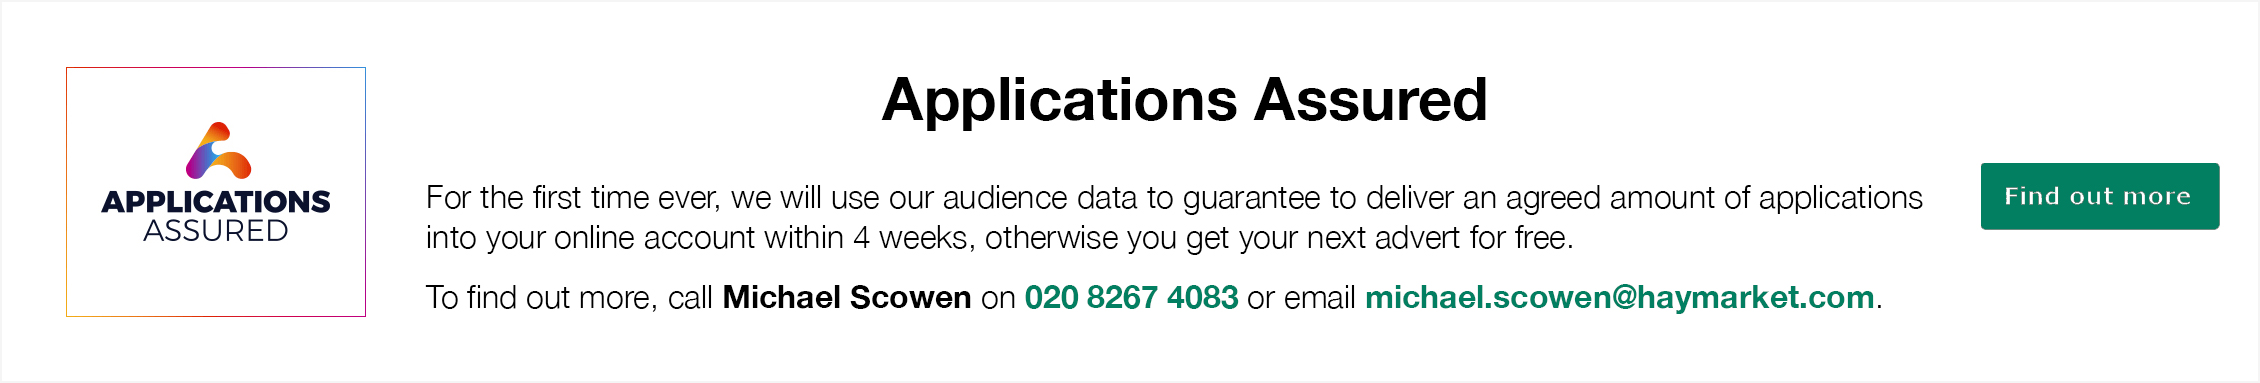 Applications Assured Banner